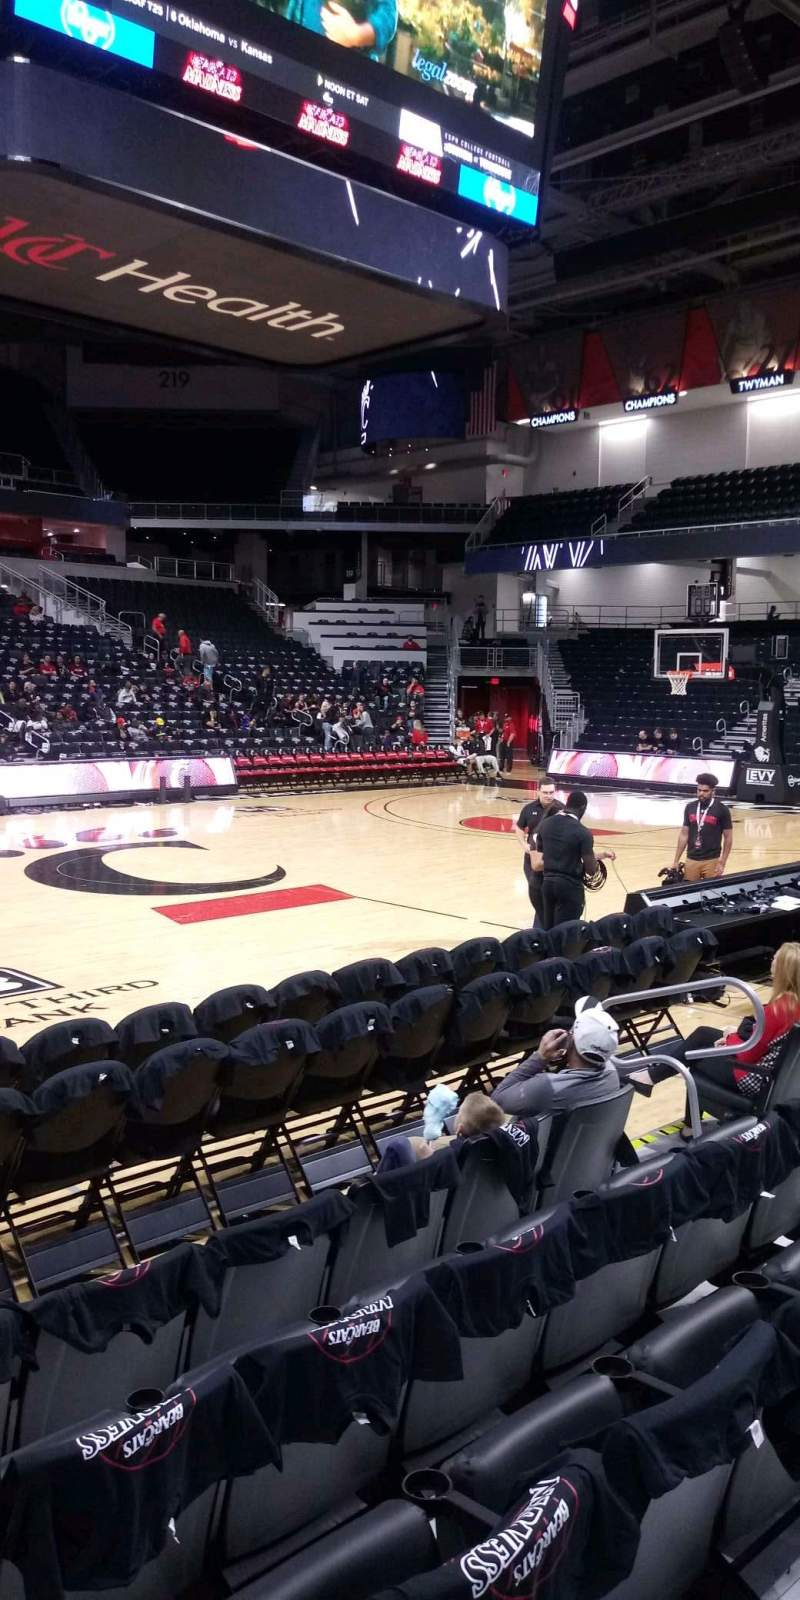 Seating view for Fifth Third Arena Section 105 Row 5 Seat 8